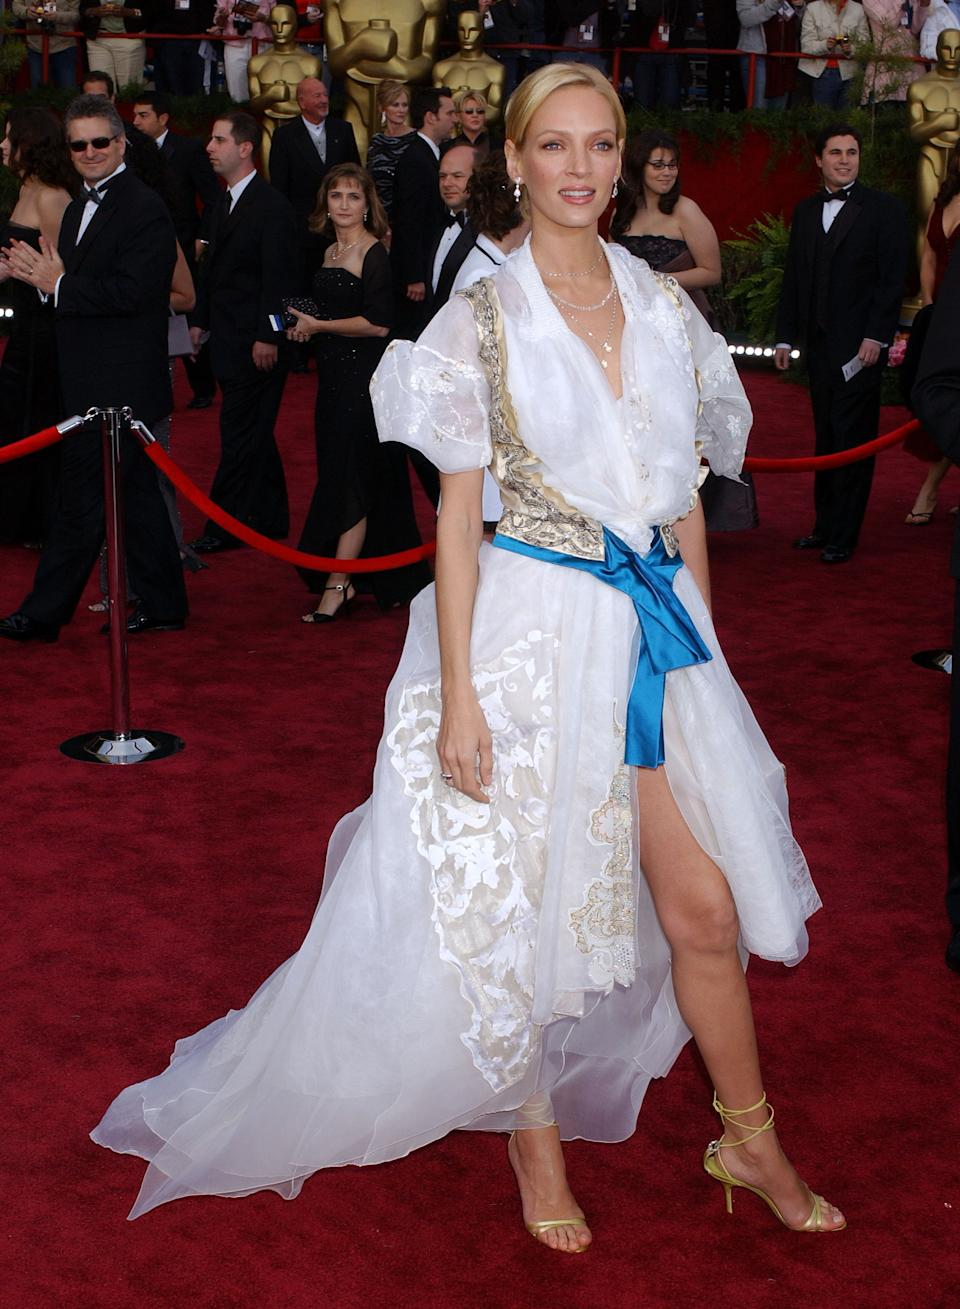 "<p>Although a statuesque star like Thurman could still shine in a paper bag, the ""Kill Bill"" star <a href=""https://metro.co.uk/2013/02/21/oscars-fashion-hall-of-shame-the-top-ten-worst-dressed-ever-3508163/"" rel=""nofollow noopener"" target=""_blank"" data-ylk=""slk:called"" class=""link rapid-noclick-resp"">called</a> wearing the Von Trapp Family singer ensemble to the 2004 Academy Awards her ""most embarrassing experience.""</p>"